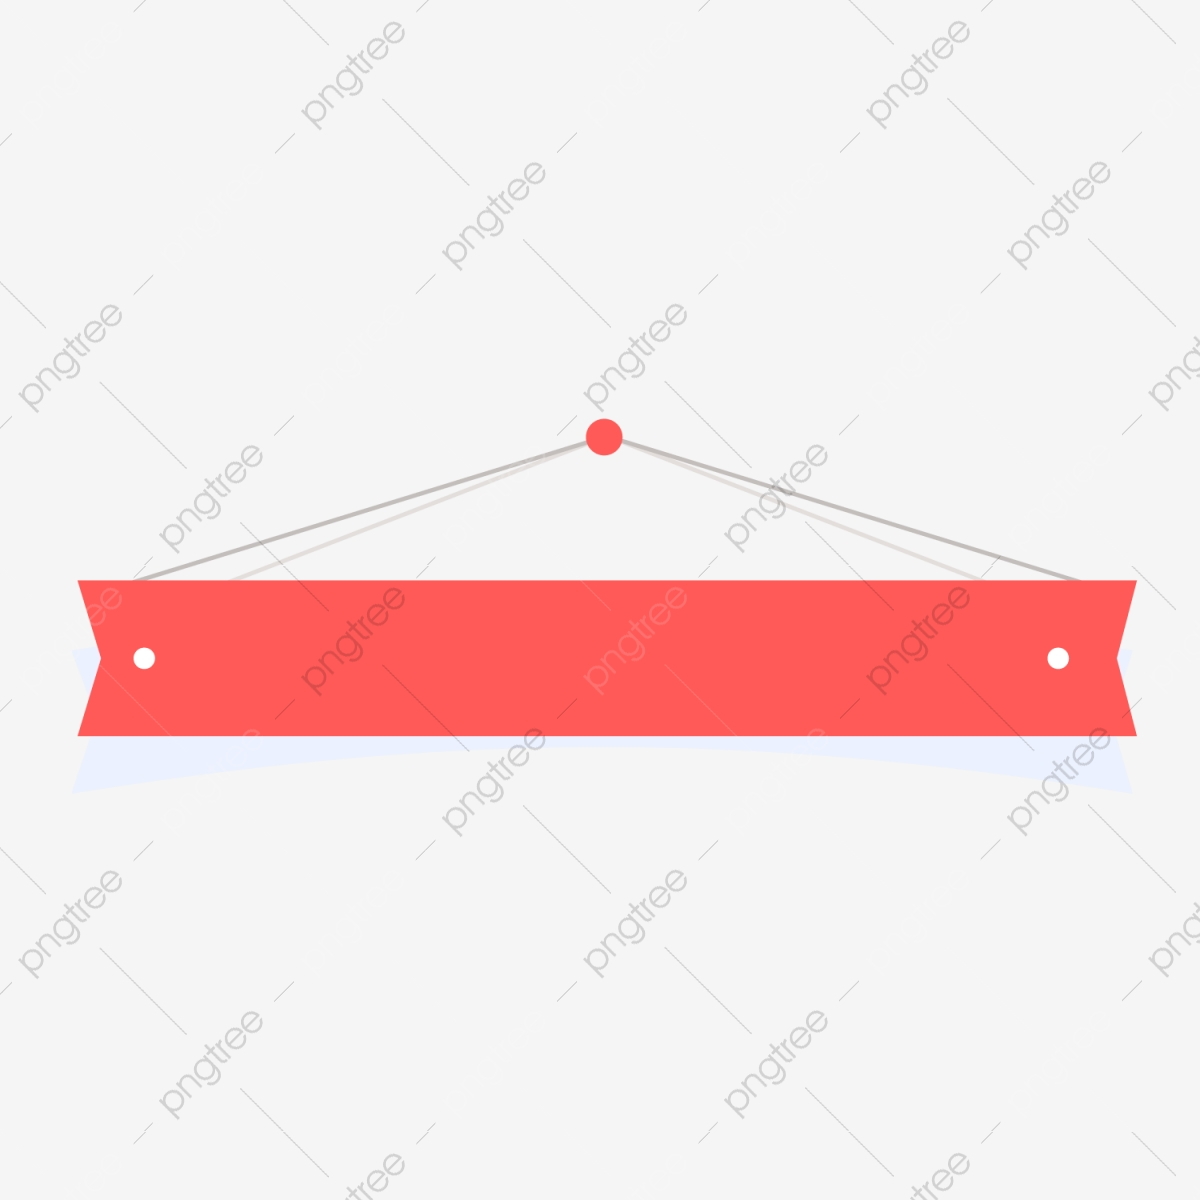 Copywriting Background Png - Cartoon Banner Red Banner Copywriting Background, Cartoon Banner ...